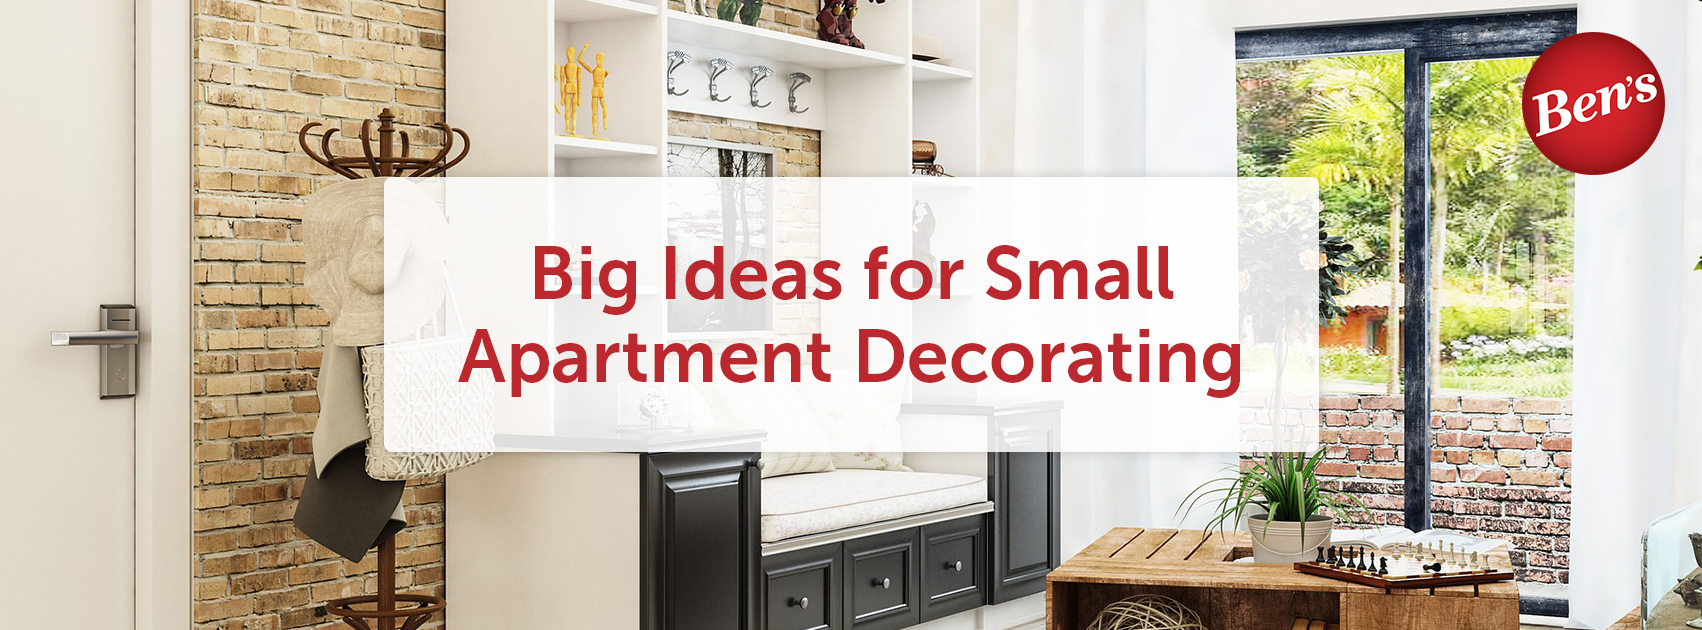 Big Ideas for Small Apartment Decorating